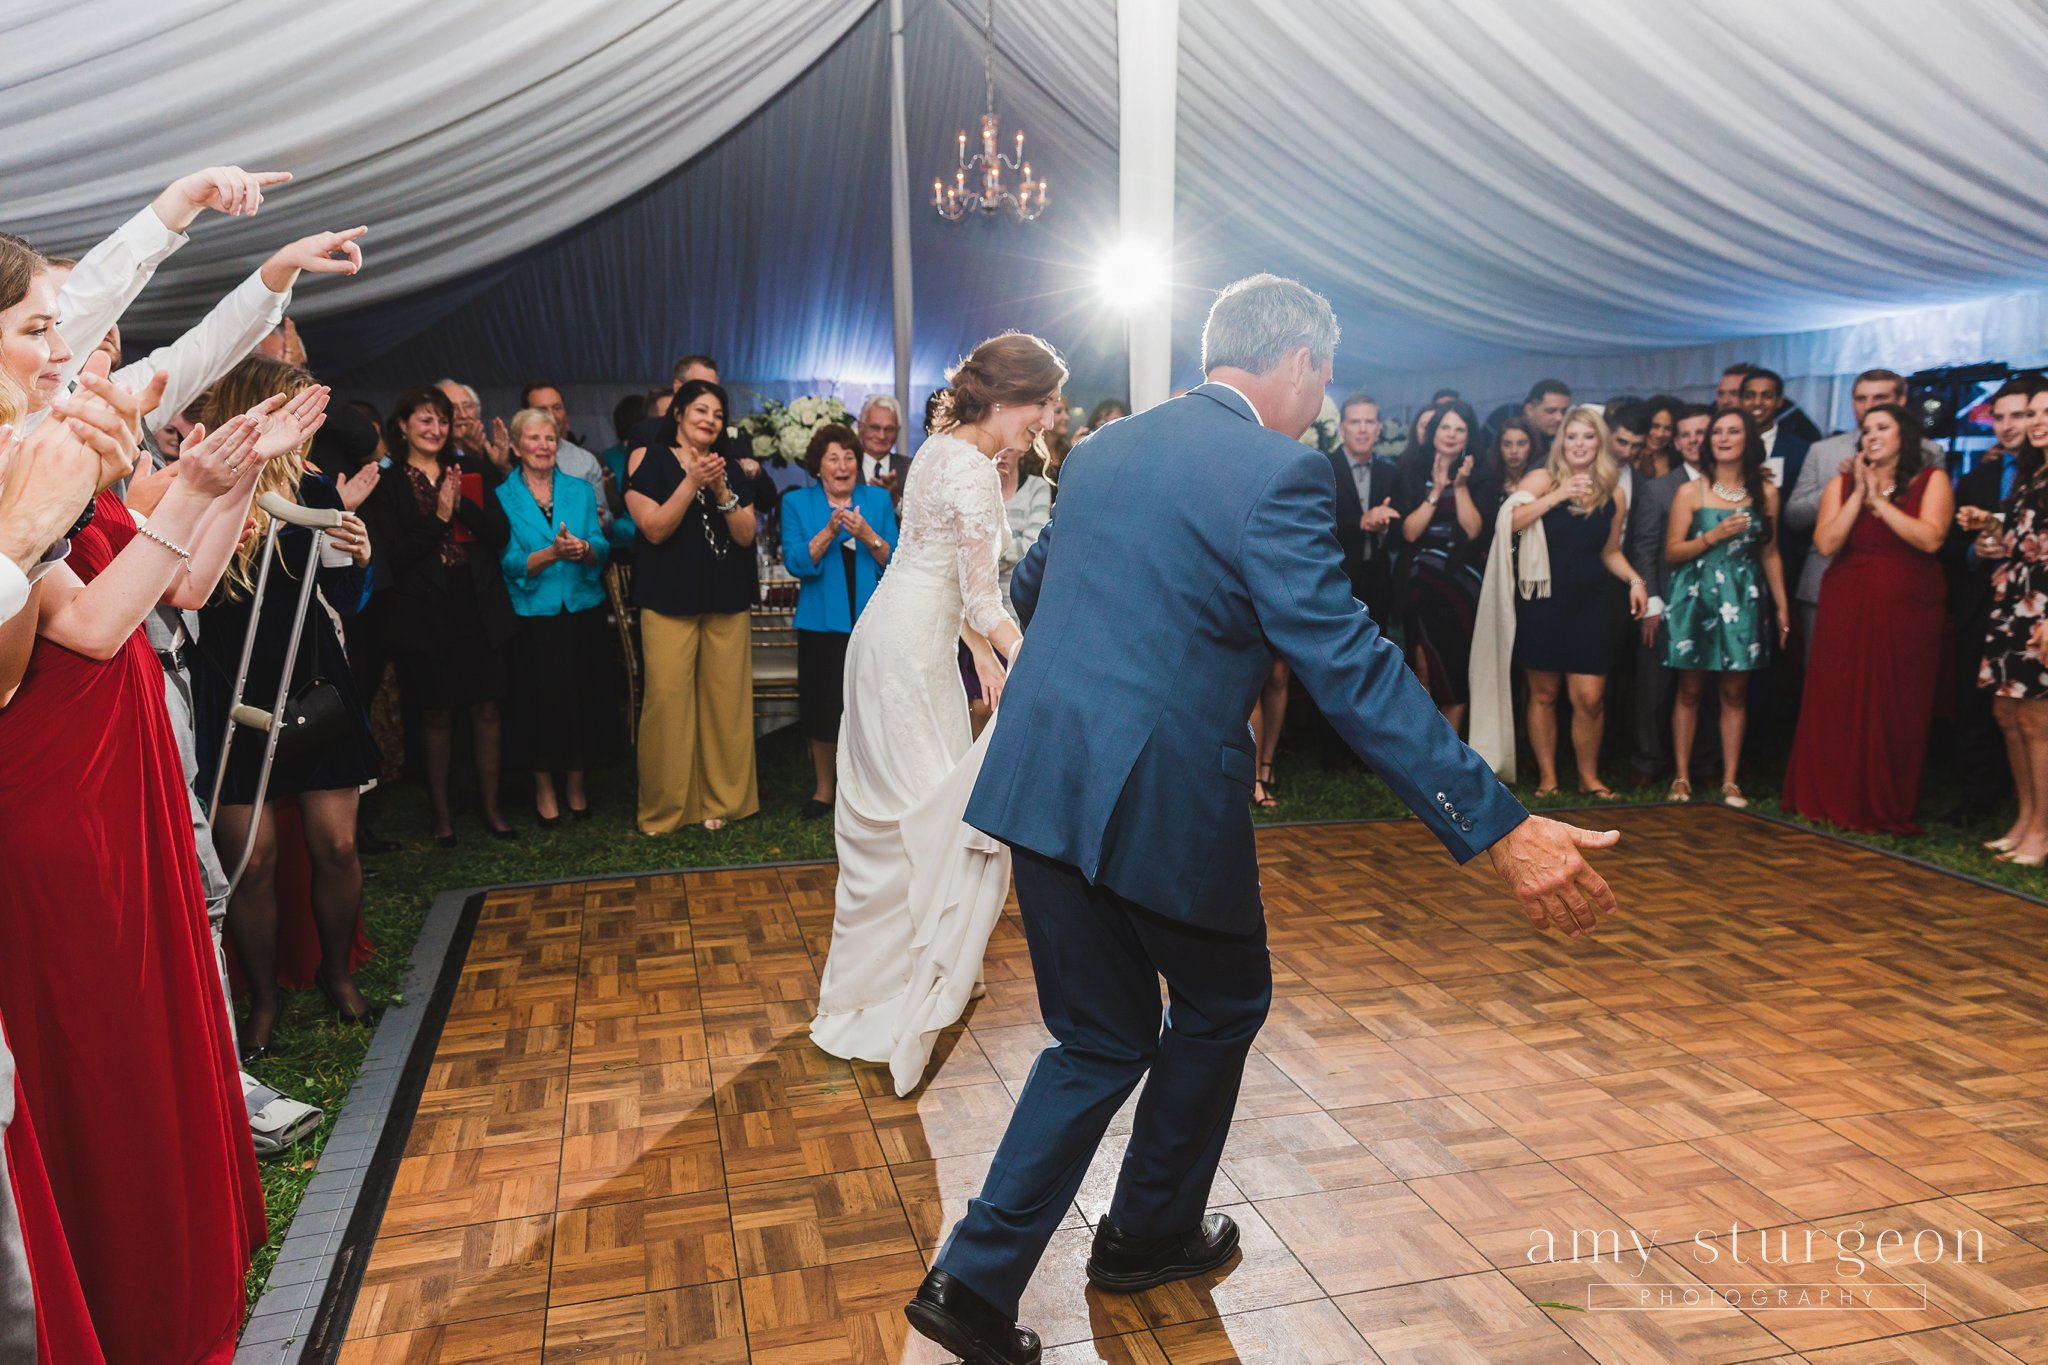 The guests cheered as the bride and her father took a bow after their father-daughter dance at the alpaca farm wedding